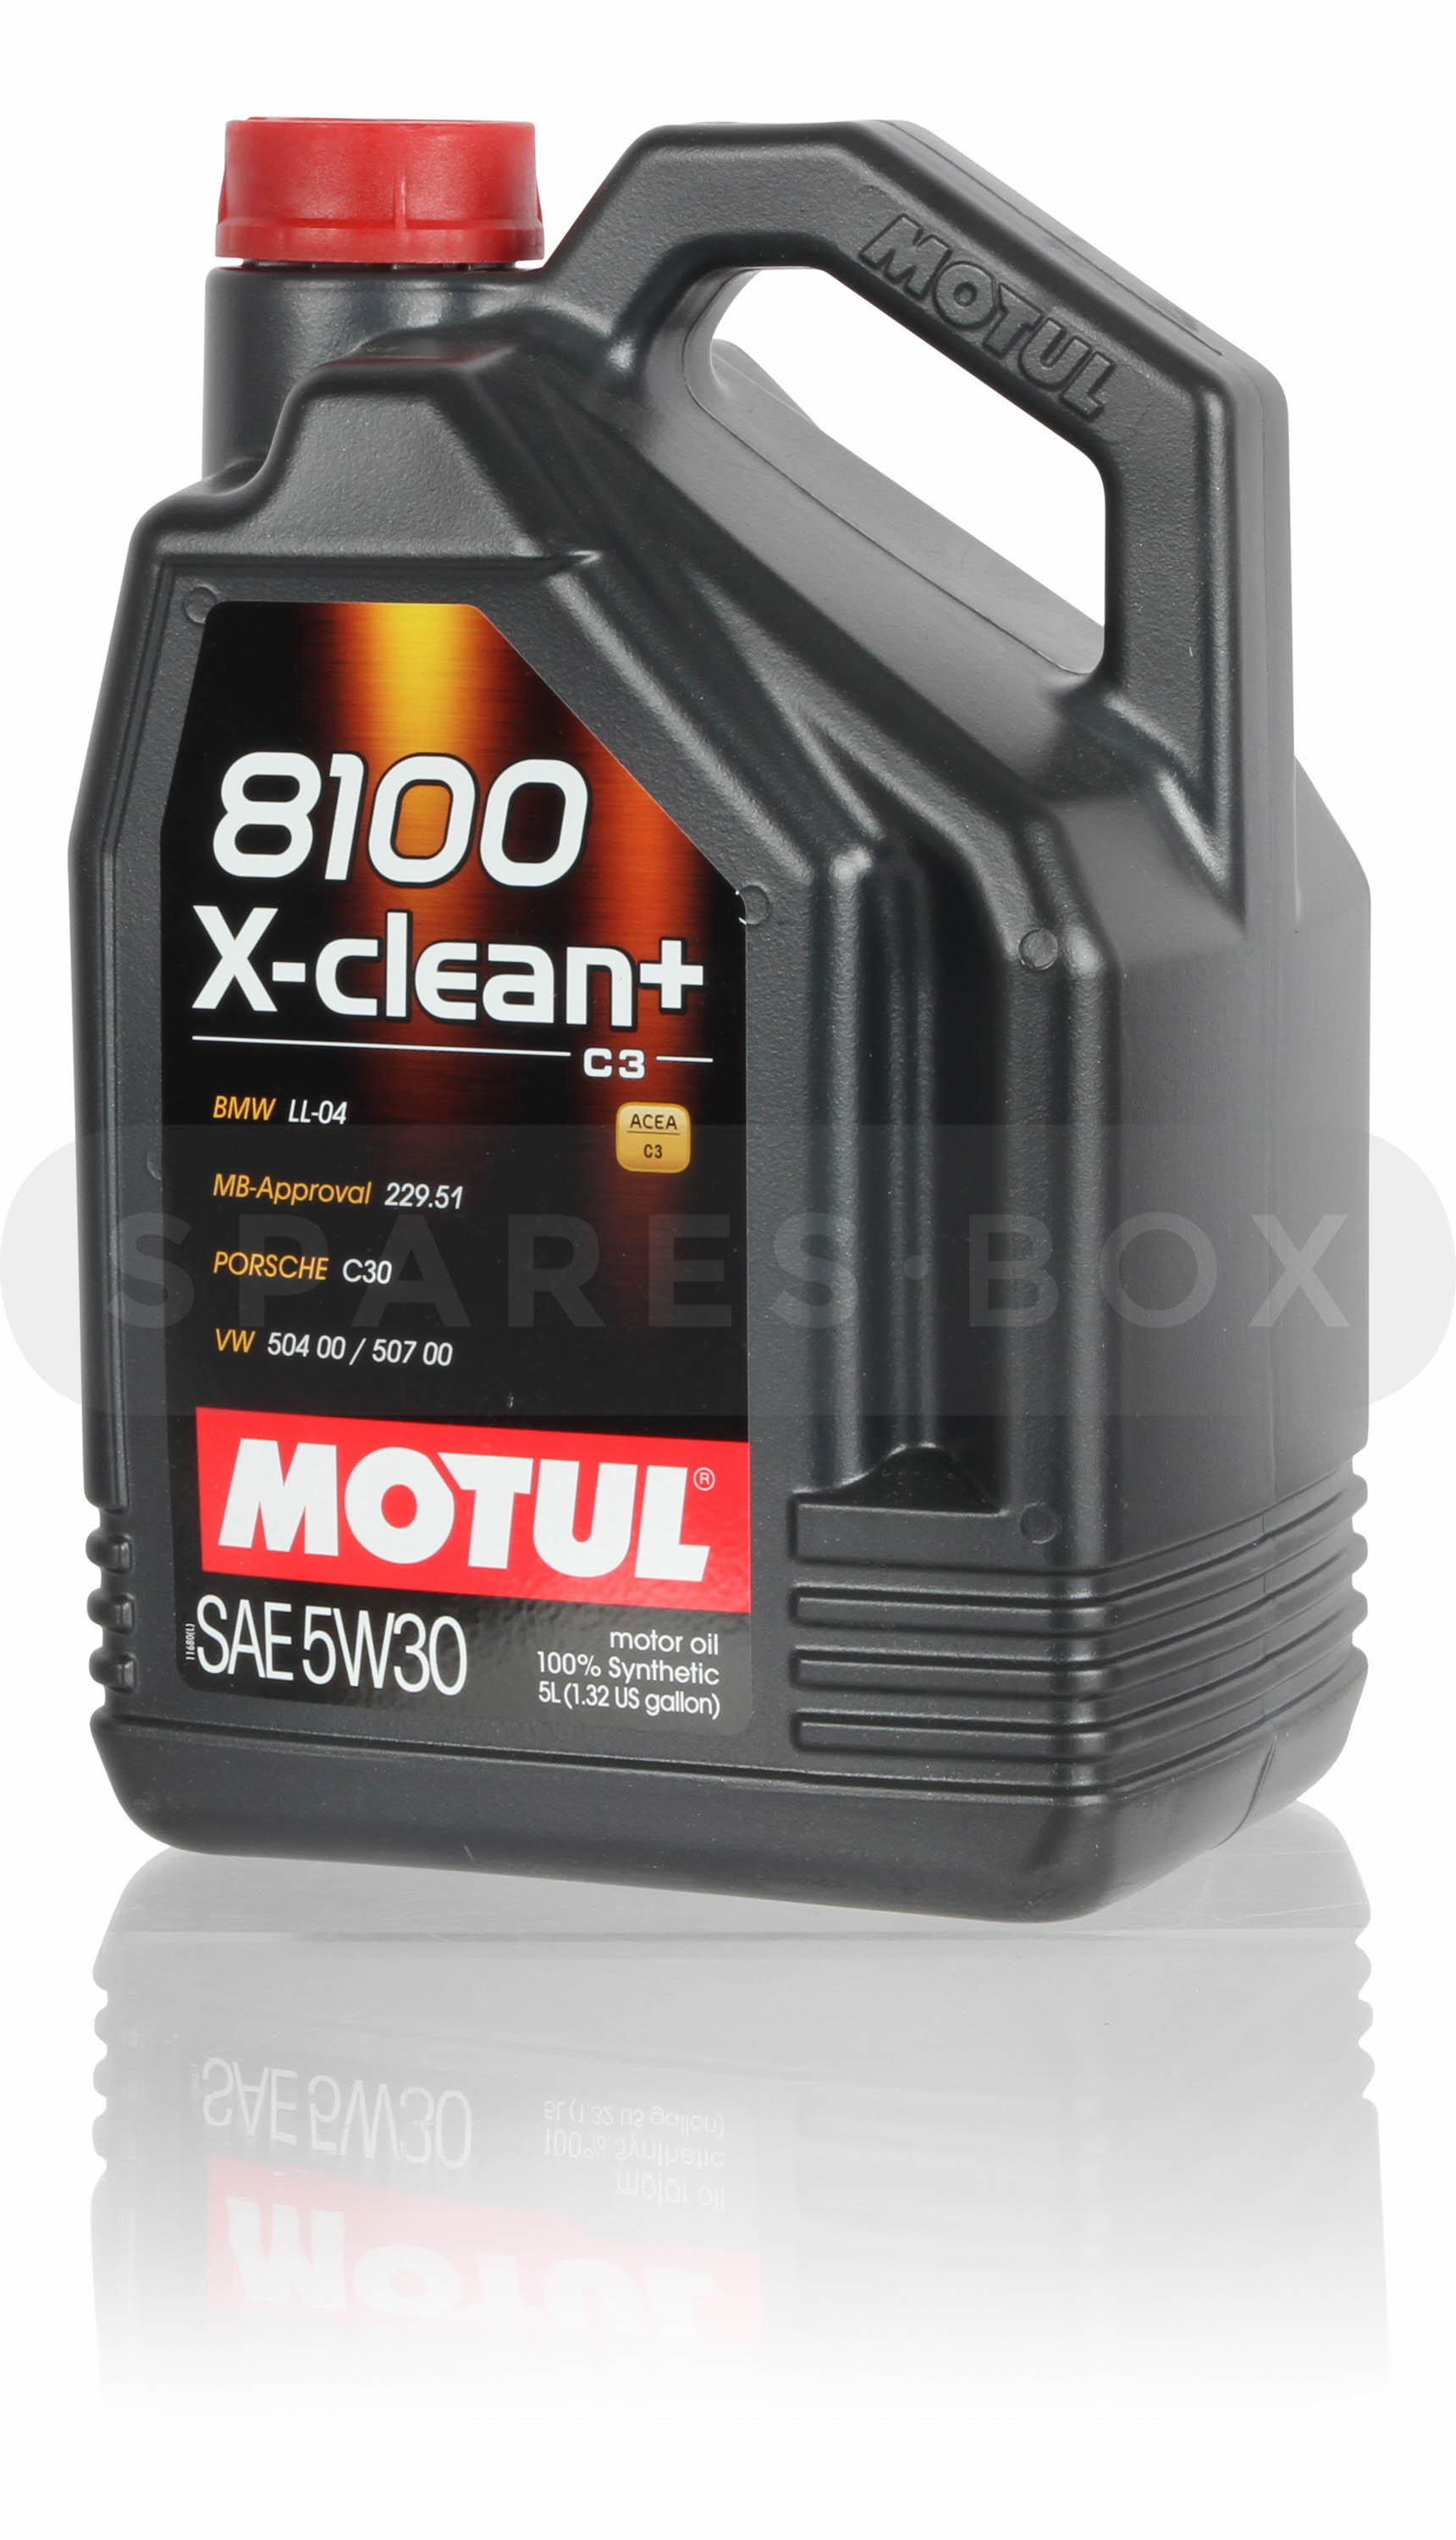 motul 8100 x cleanplus 5w30 engine oil 5l ebay. Black Bedroom Furniture Sets. Home Design Ideas